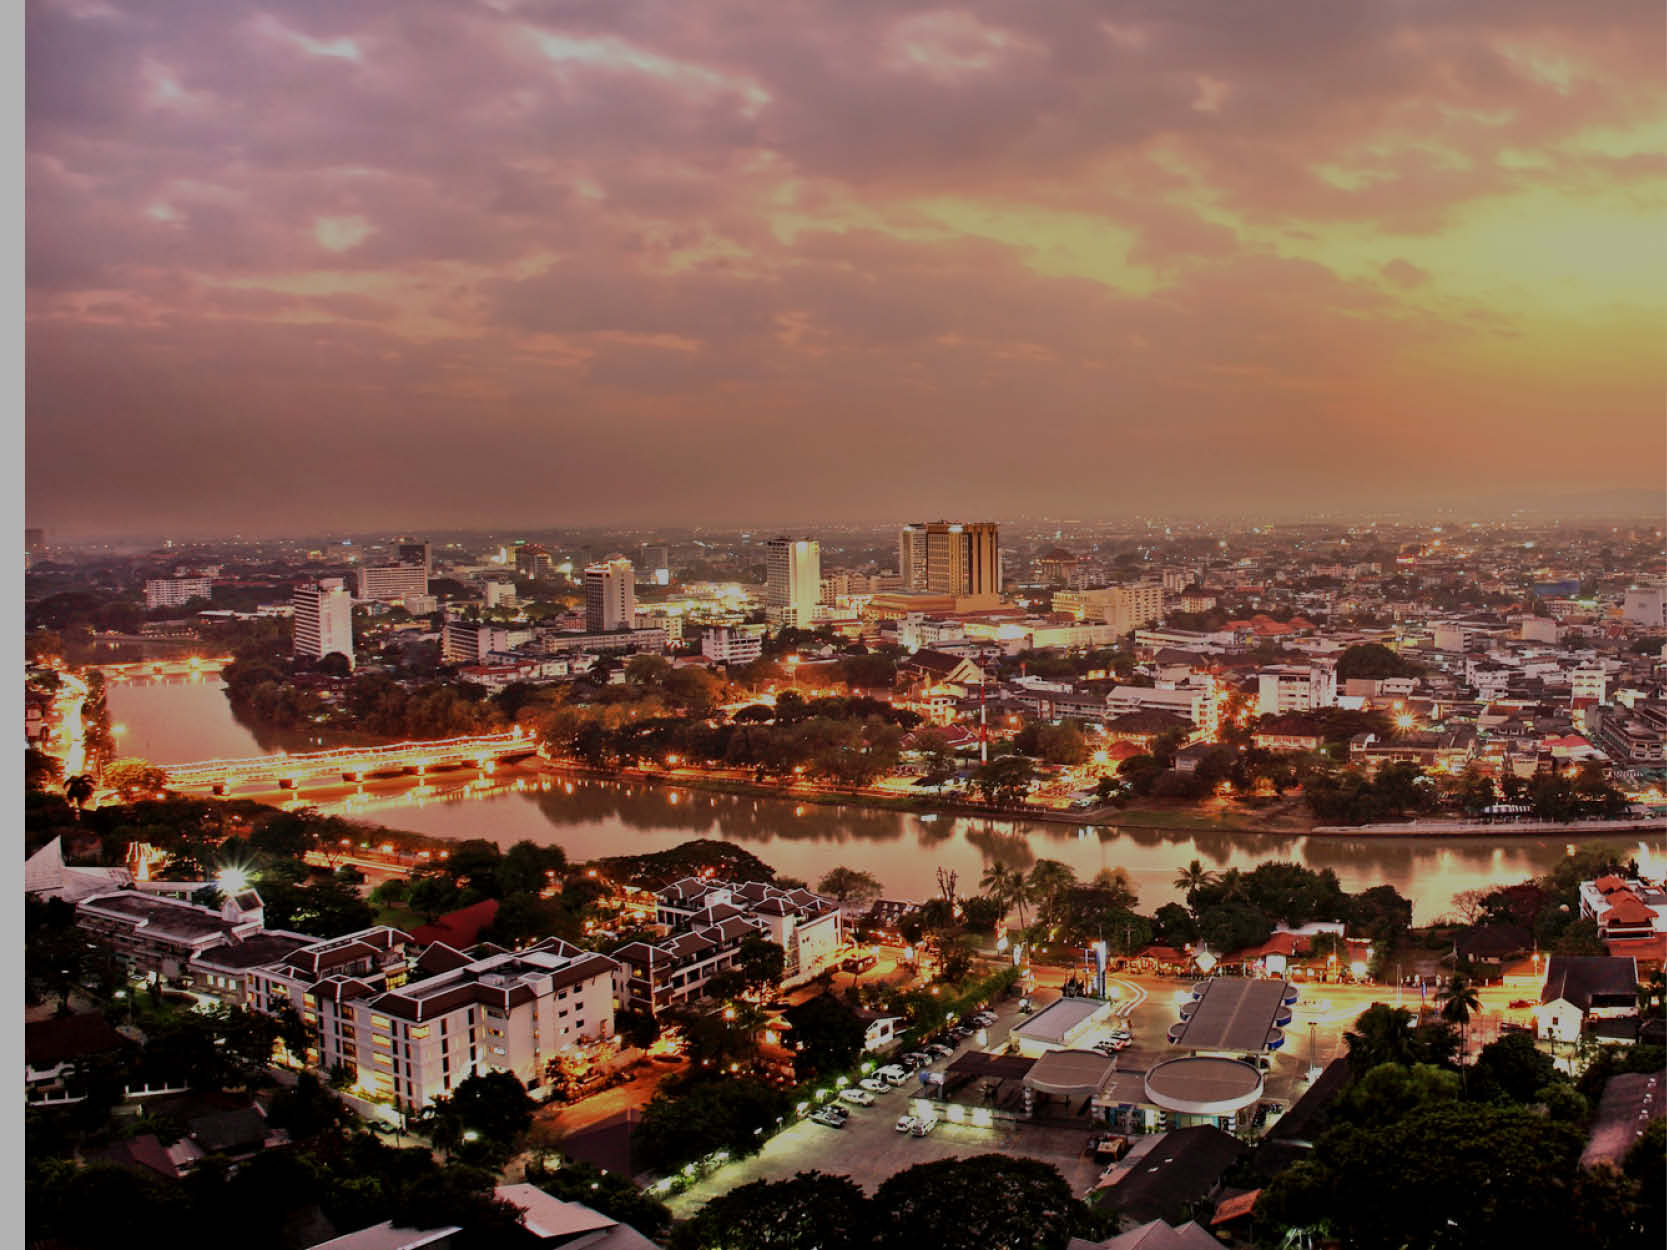 Thailand | Serviced Office, Coworking Space or Shared Office.